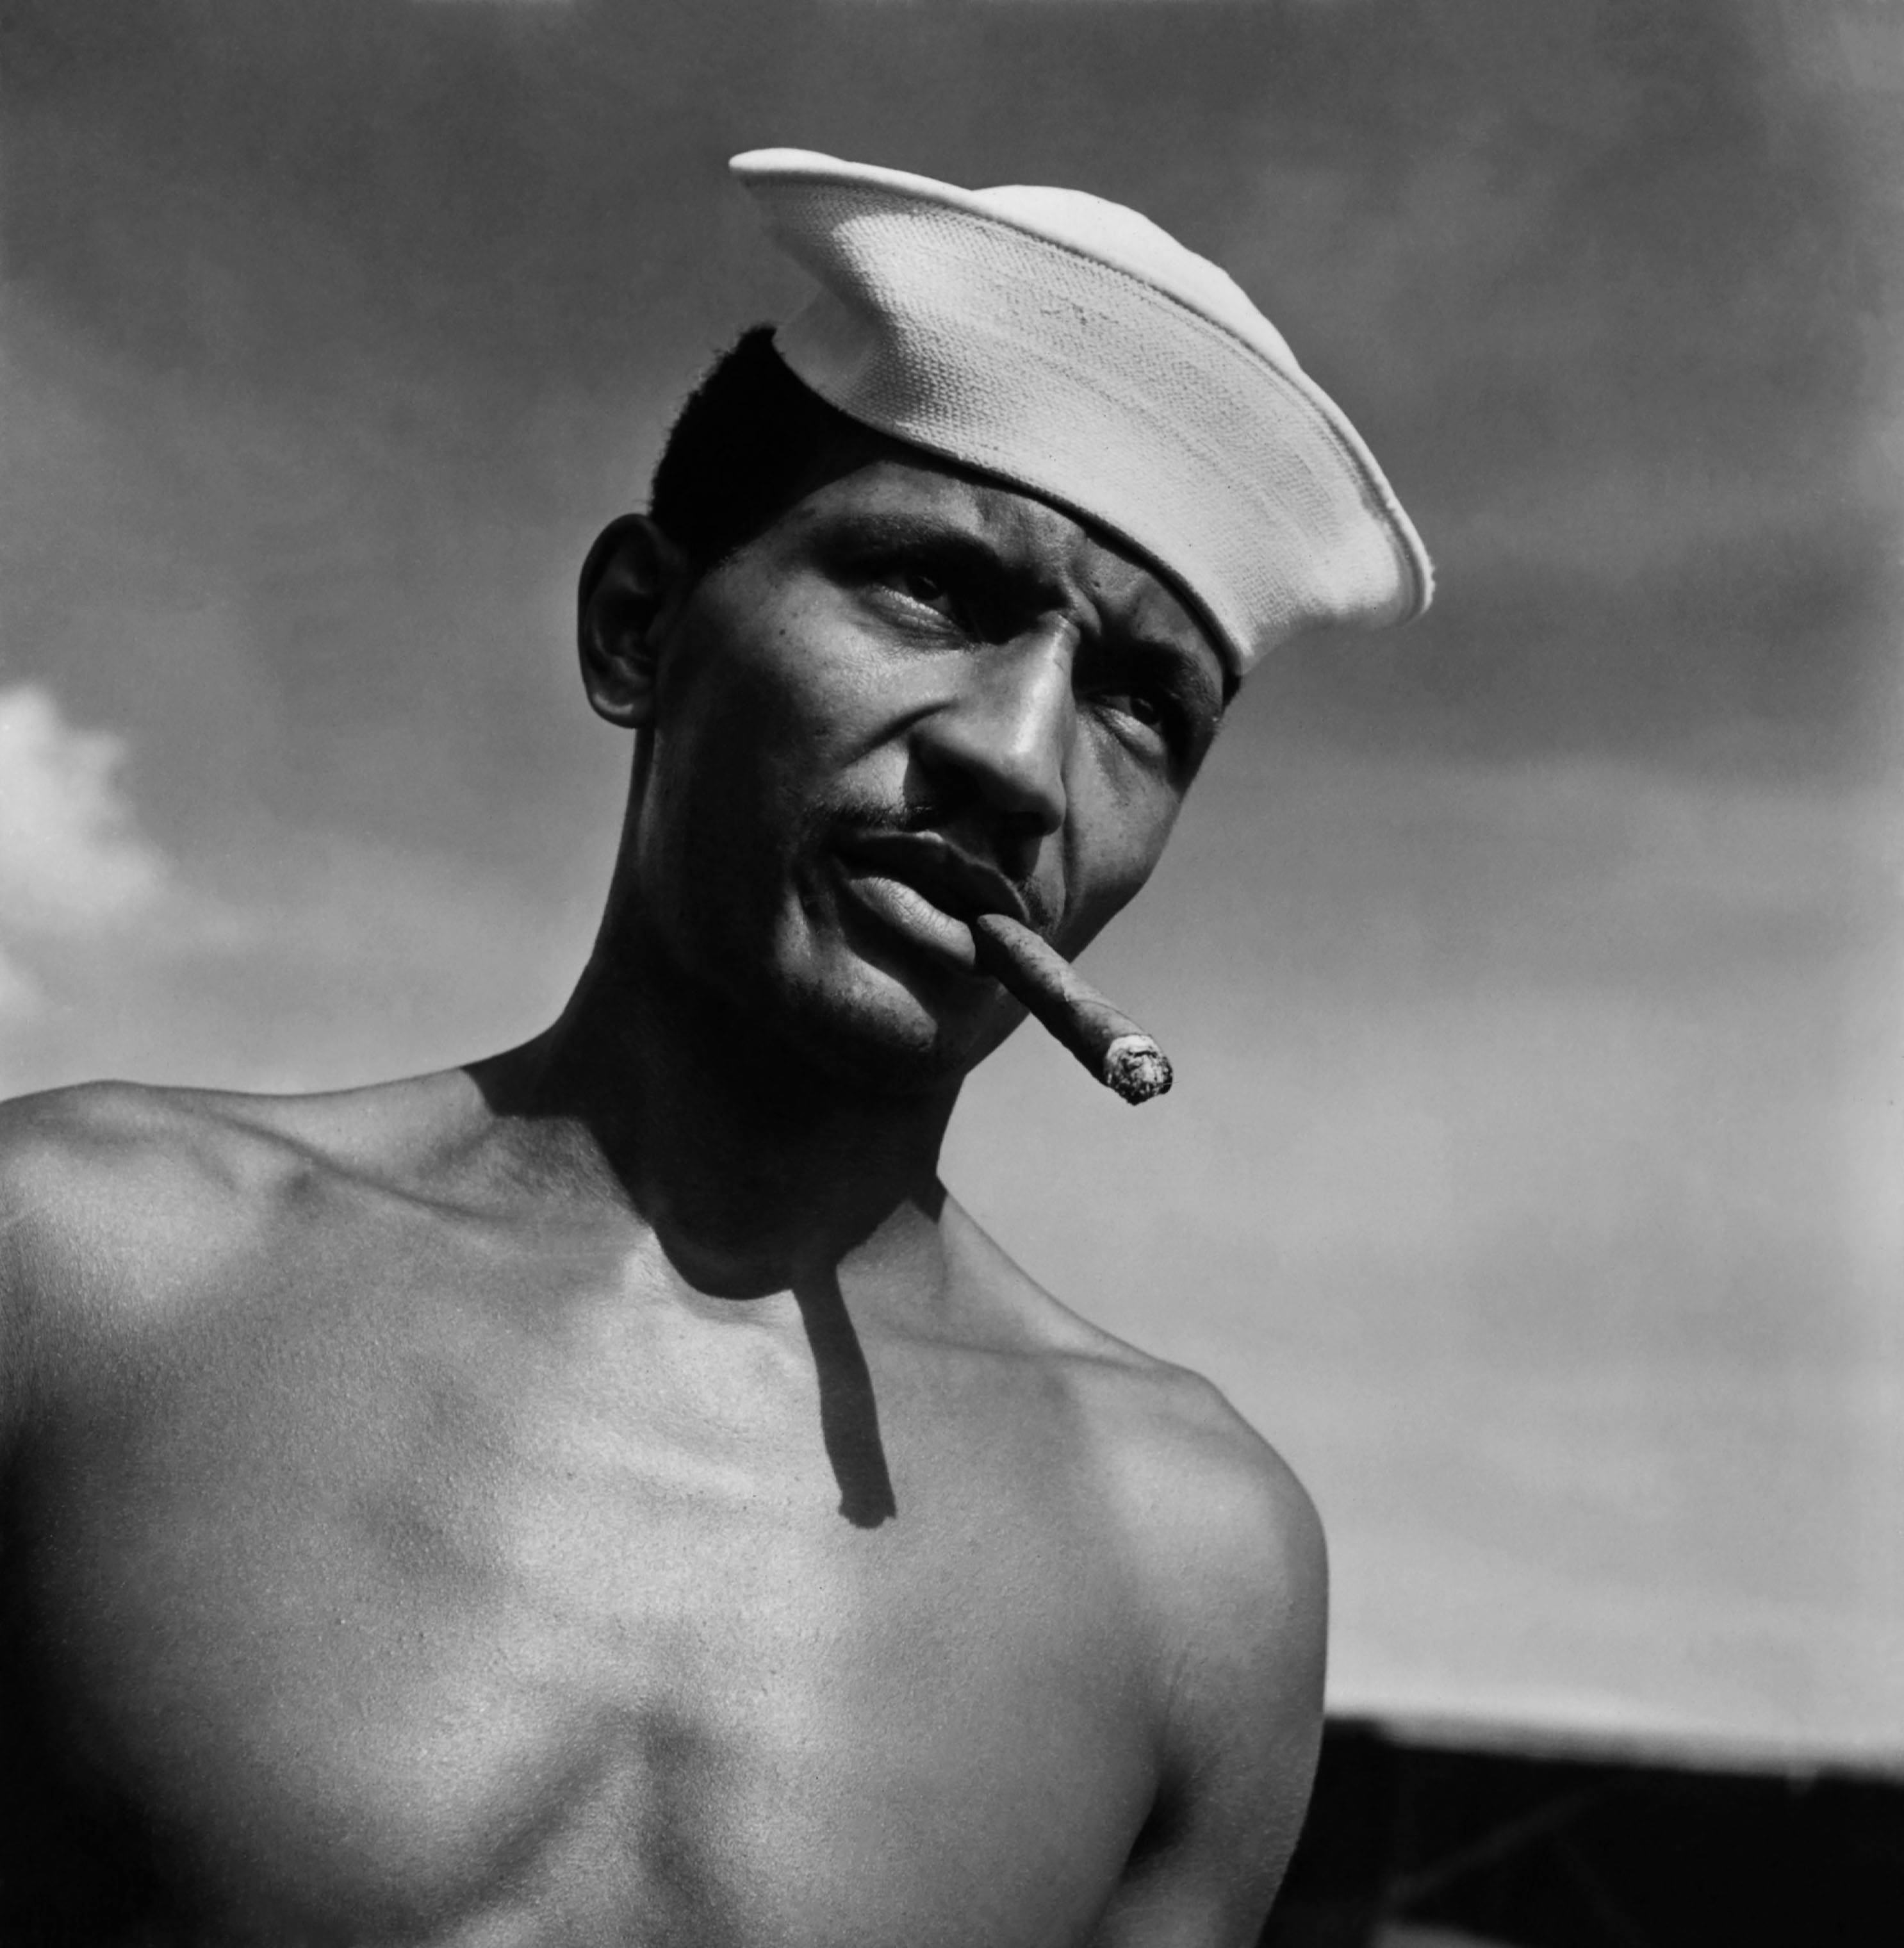 A soldier assigned to work as a laborer at the U.S. Naval Supply Depot on Guam, in 1945.